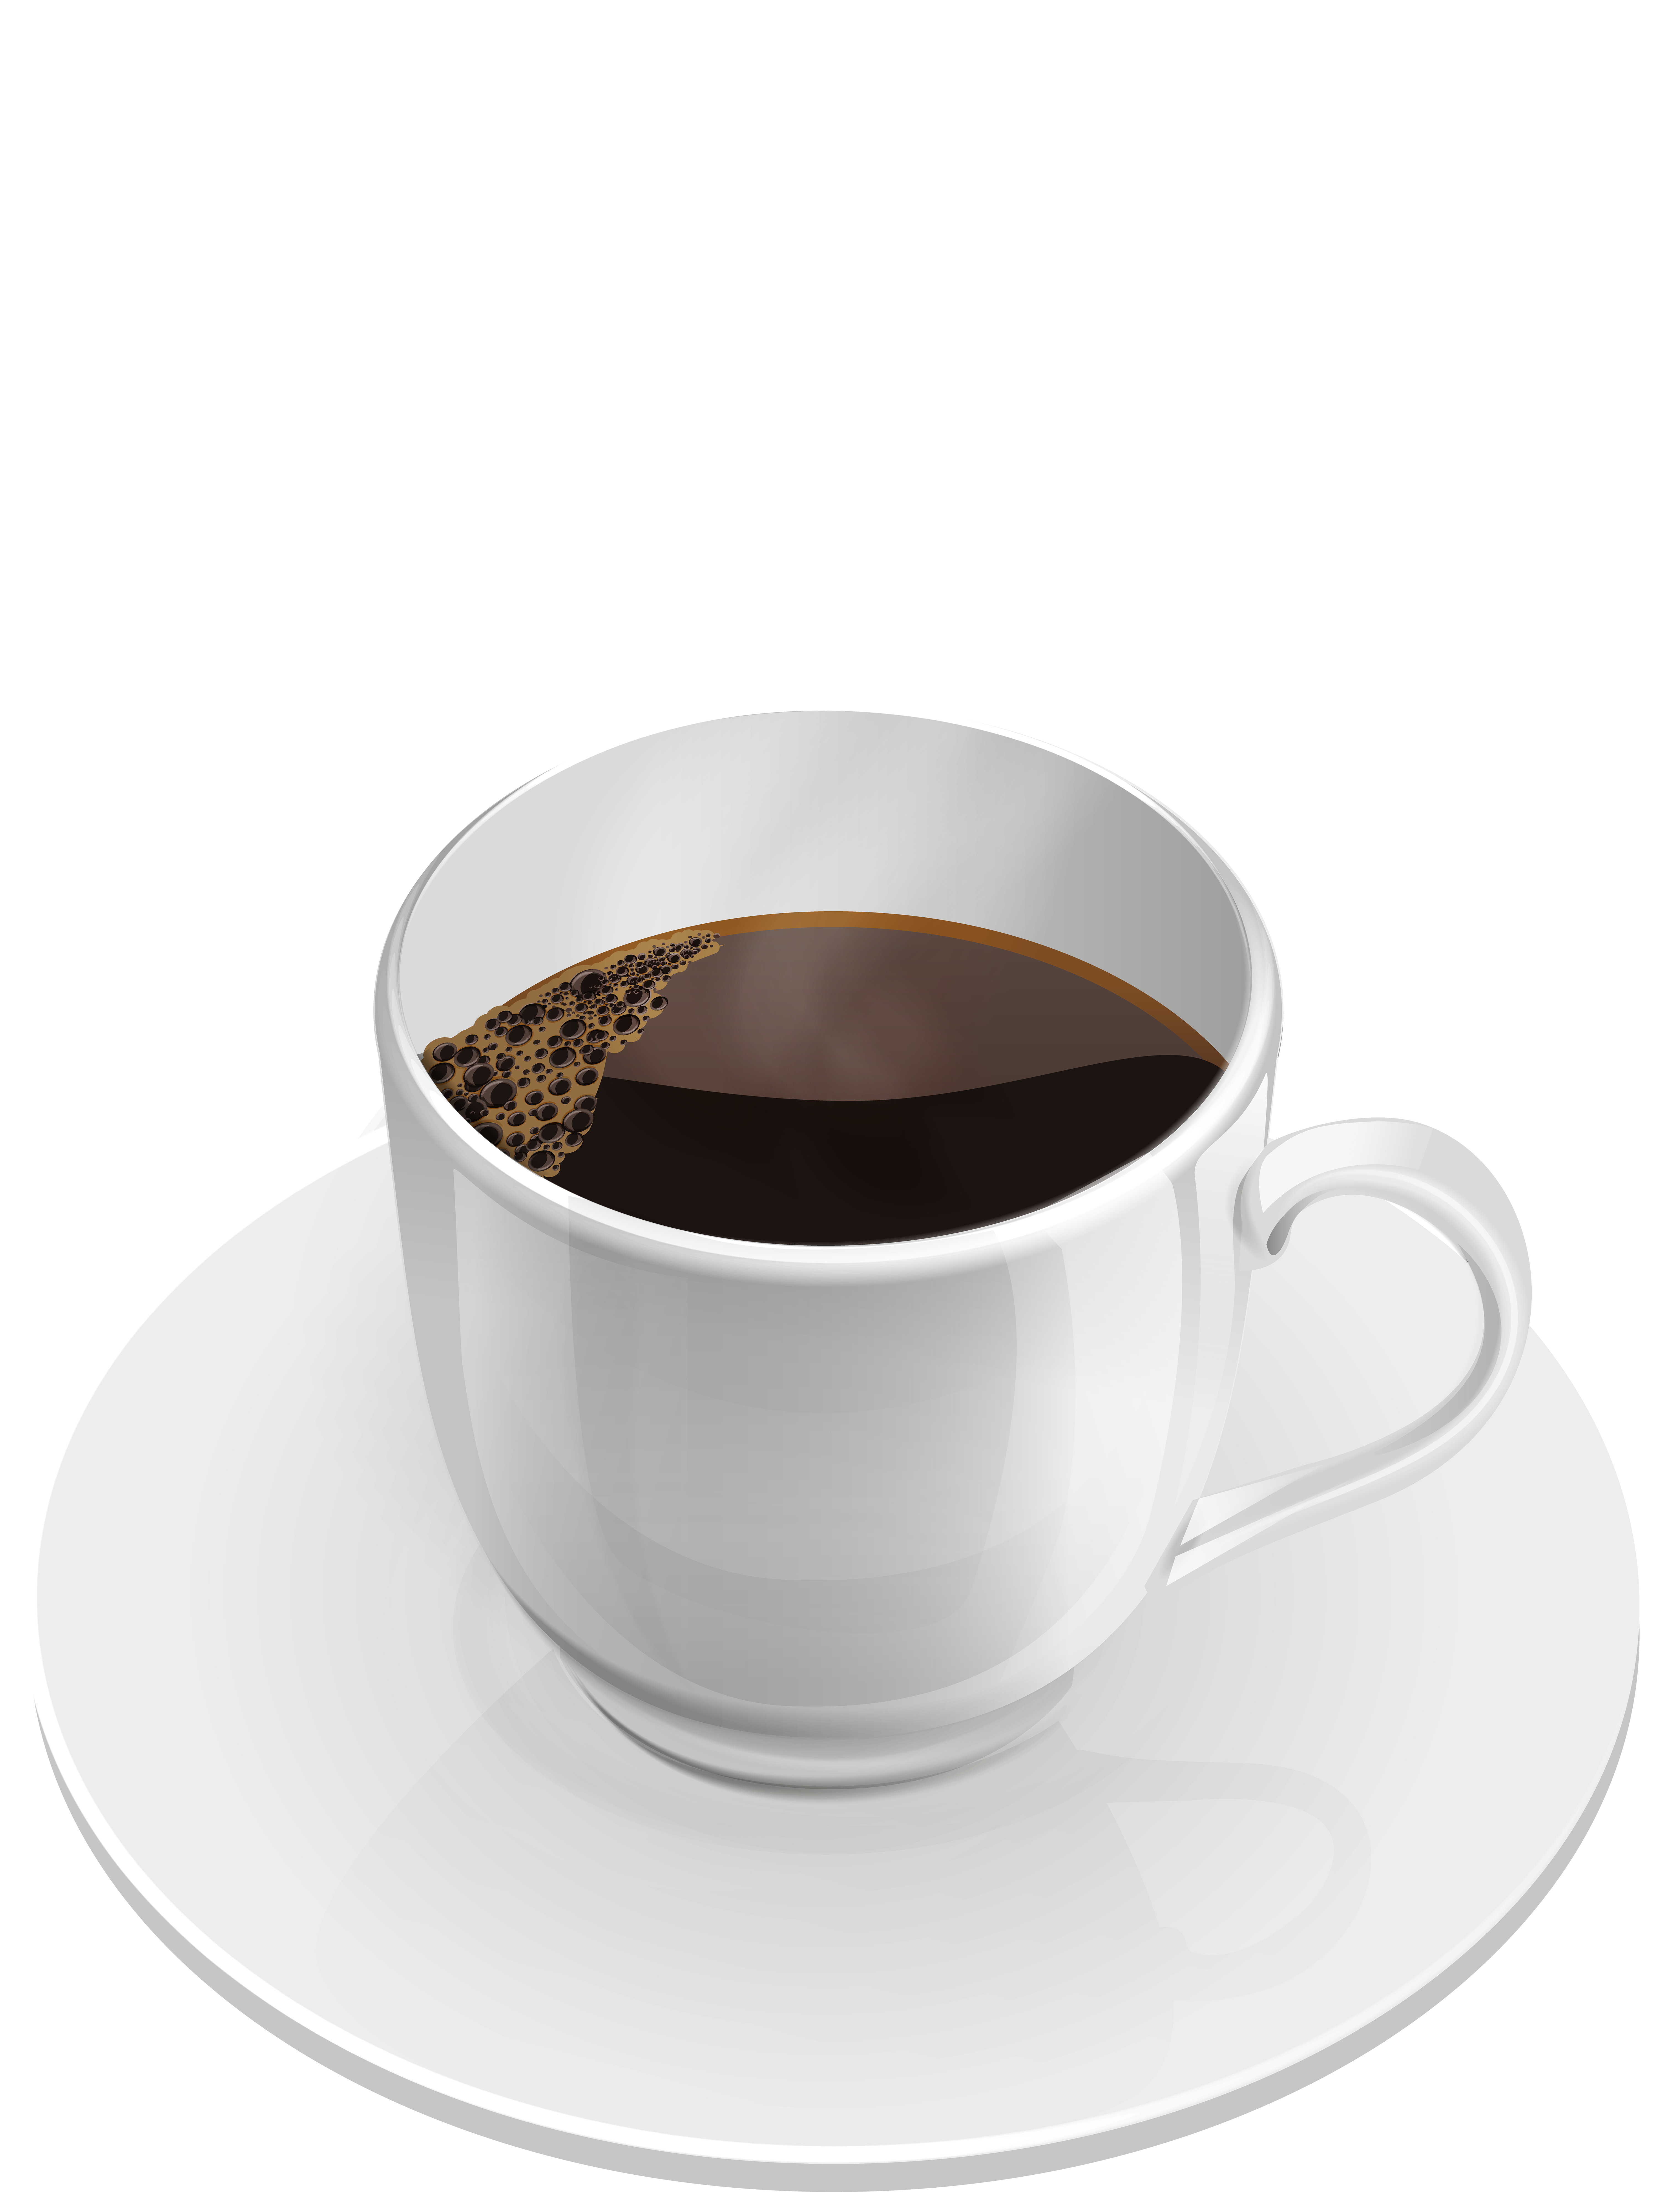 Clipart coffee summer. Hot cup png clip